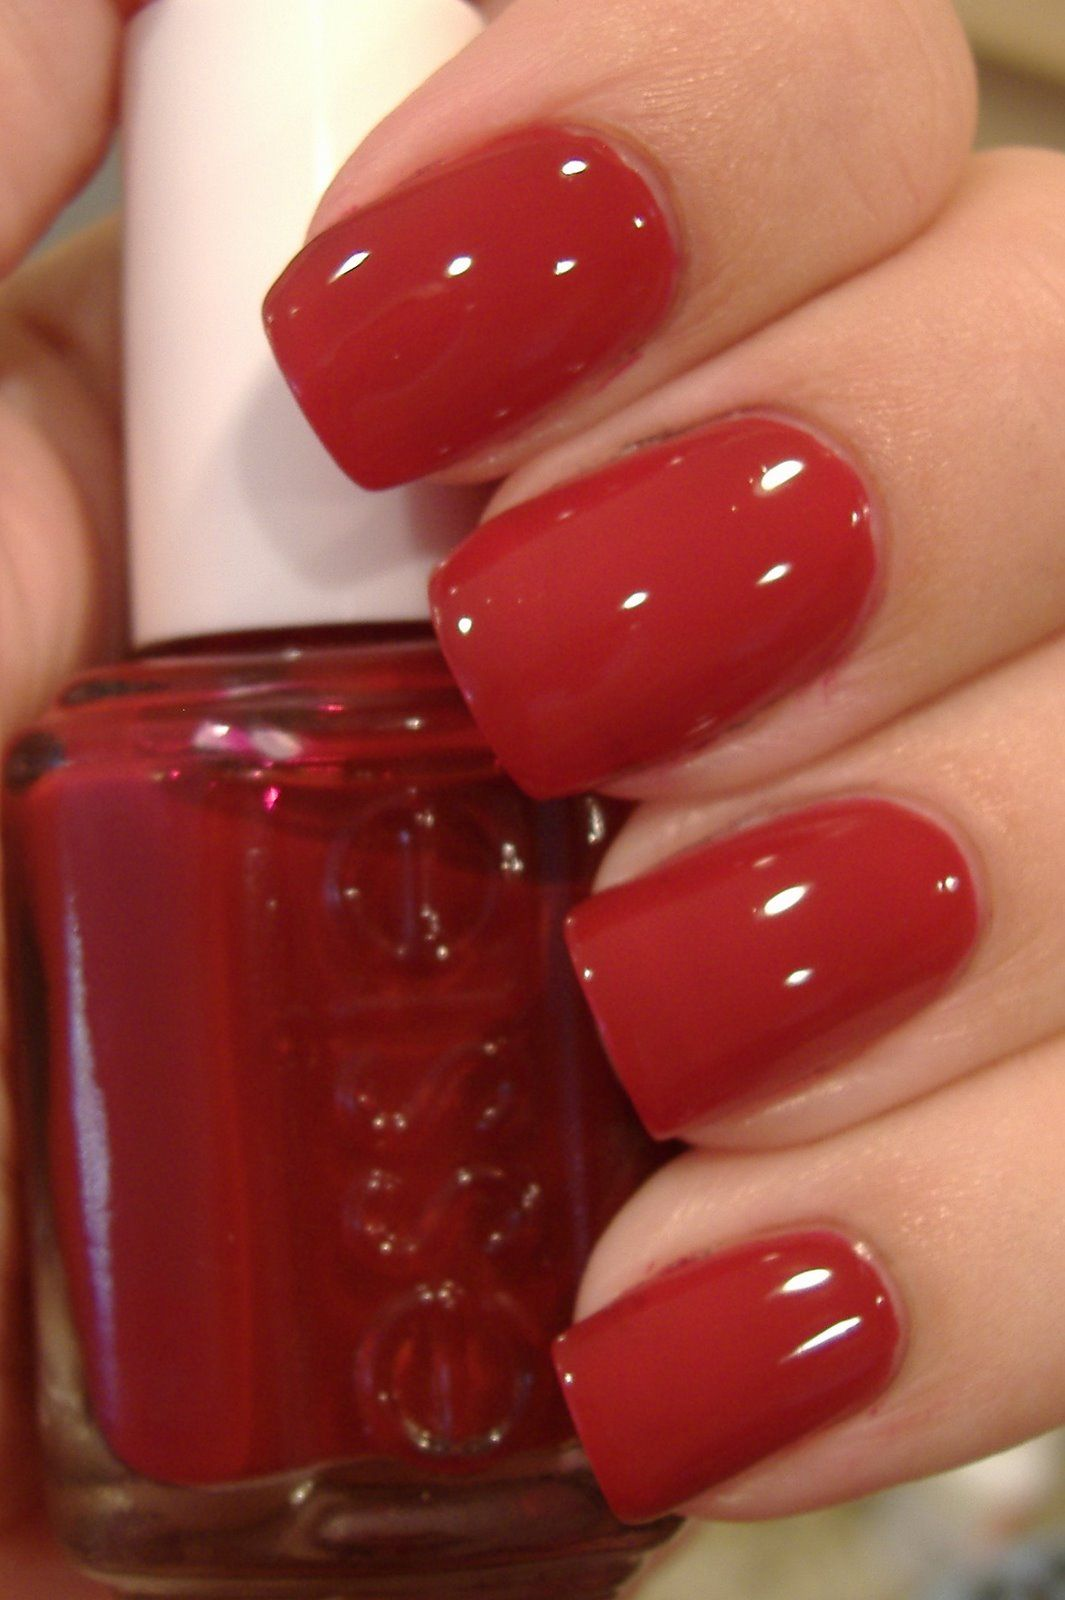 Love Essie nail polish | You nailed it! | Pinterest | Essie nail ...